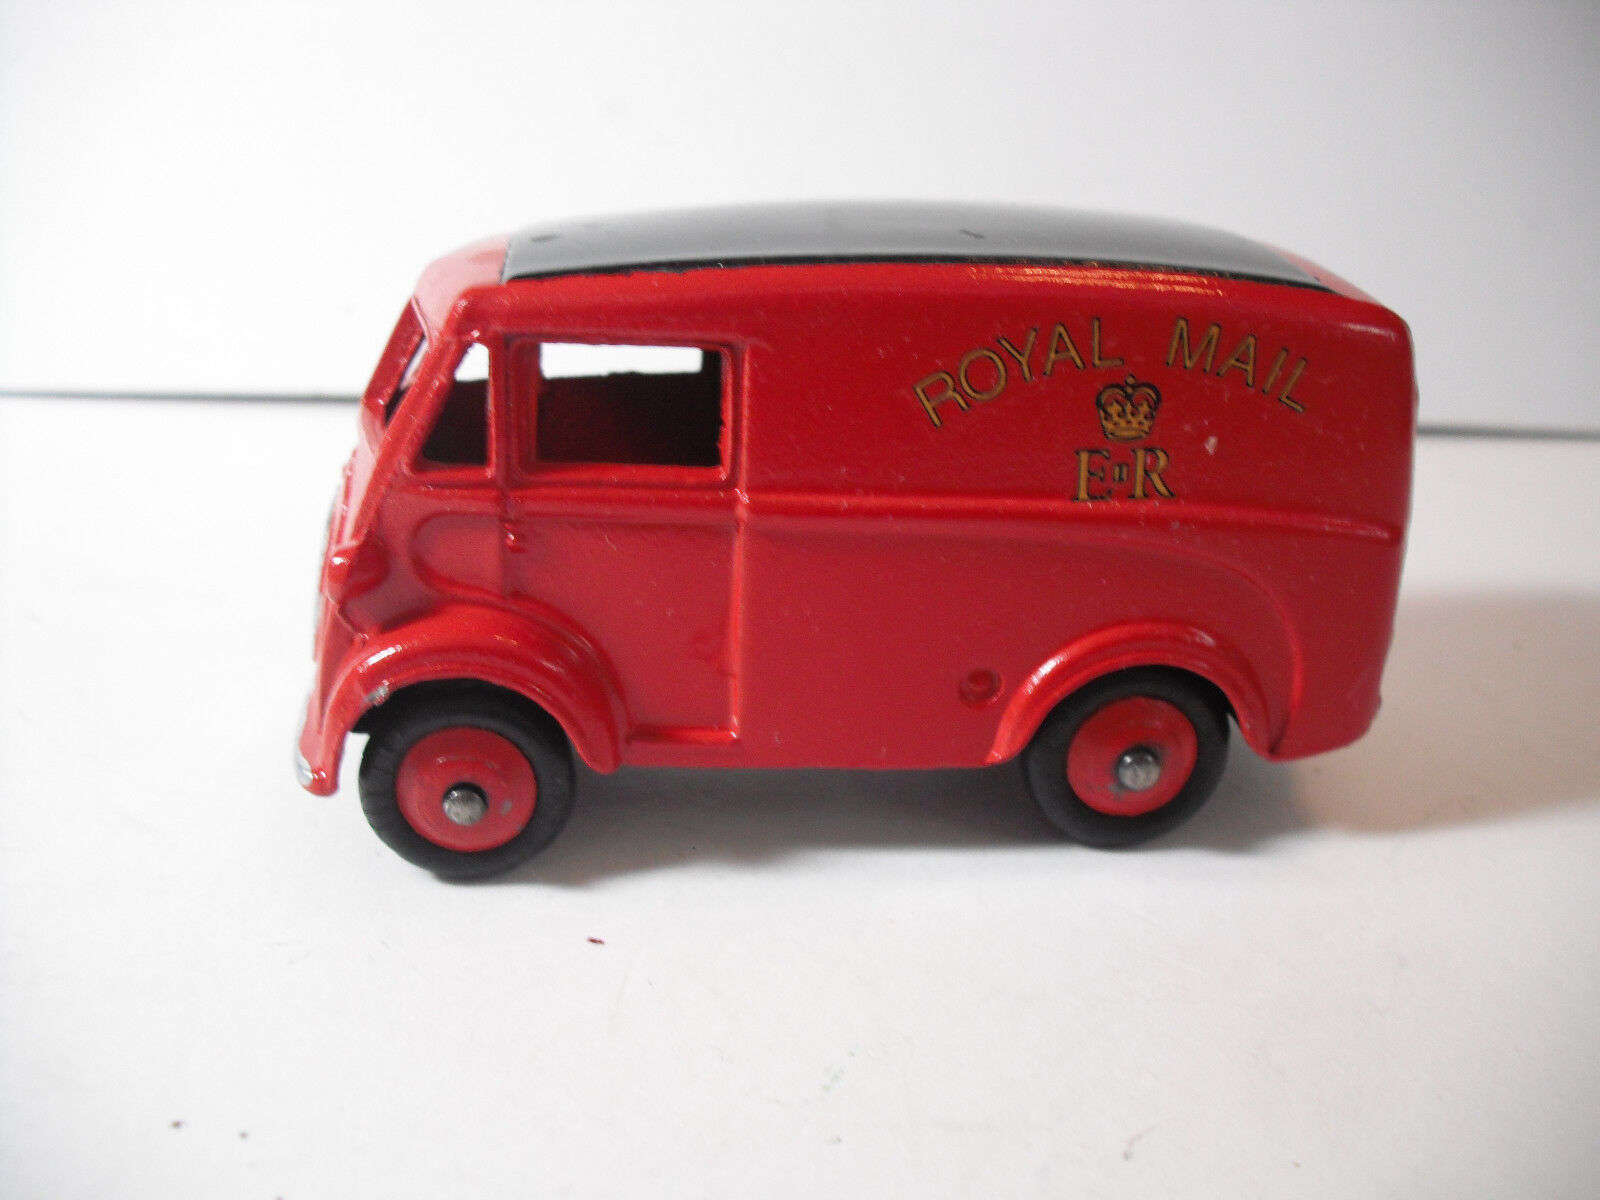 VINTAGE MECCANO LTD. ANTIQUE DINKY TOY No.26O MORRIS ROYAL MAIL VAN  RESTorosso